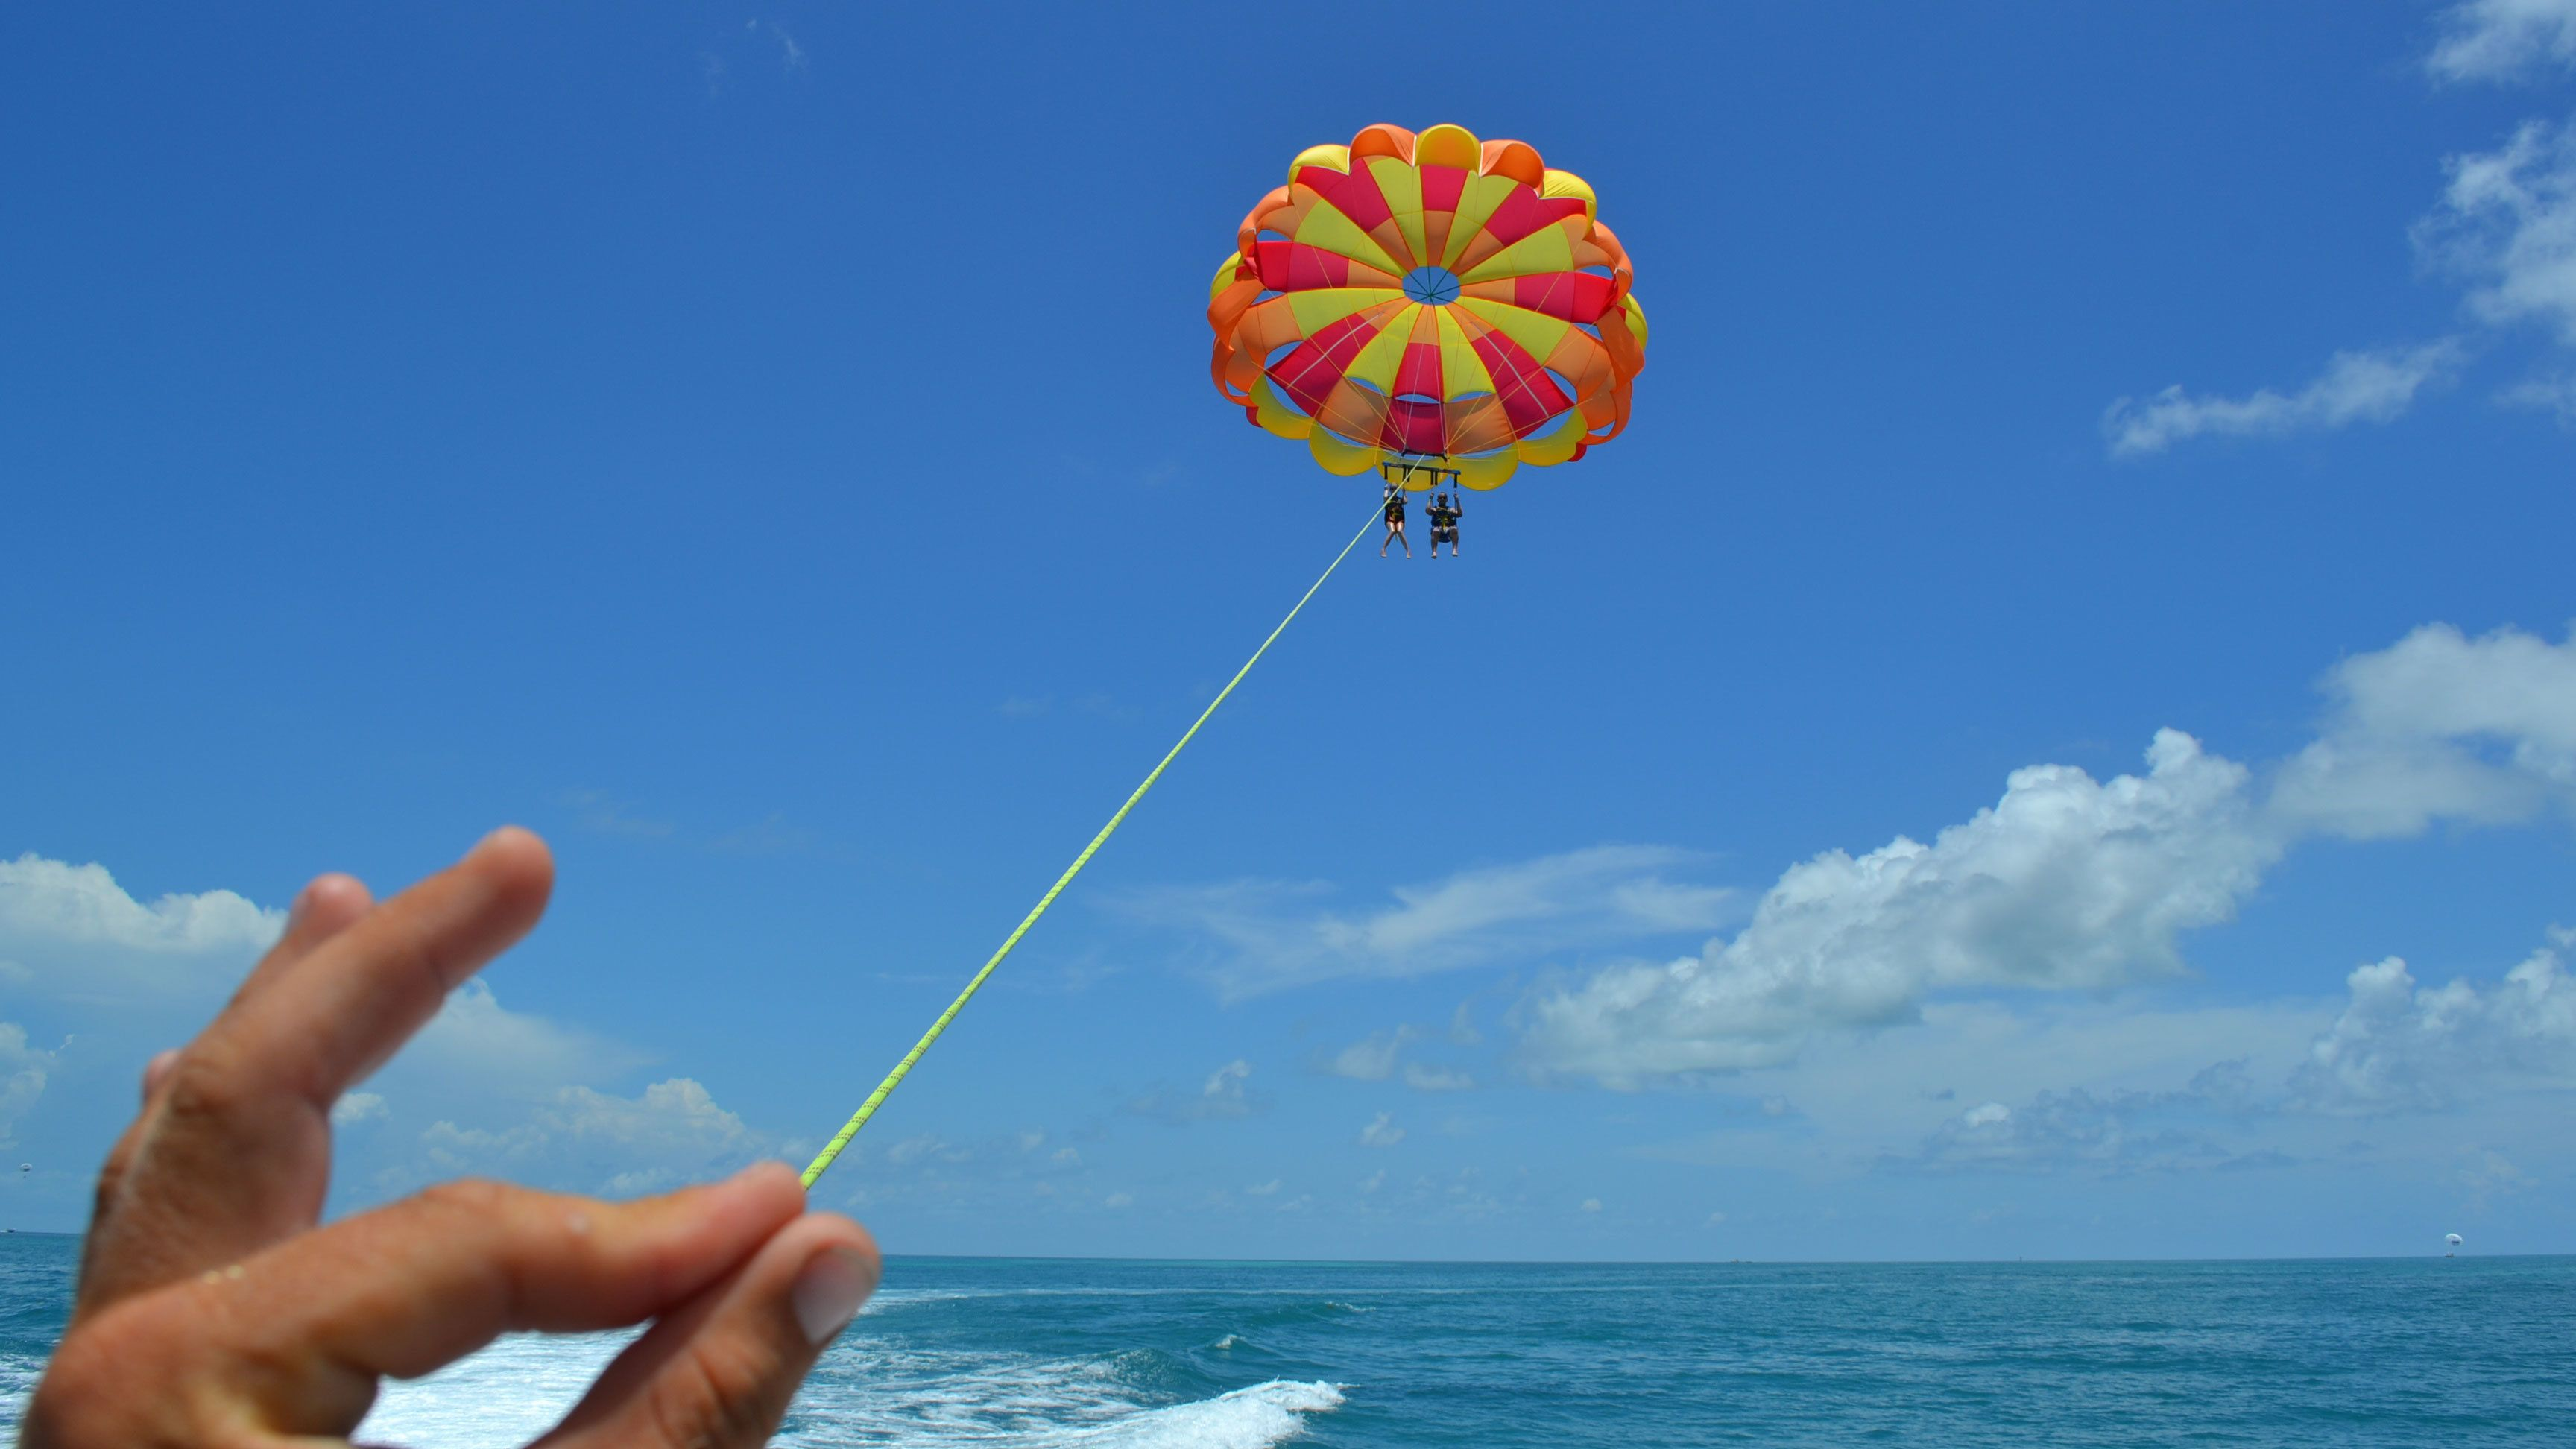 Perfect day for parasailing in Key West